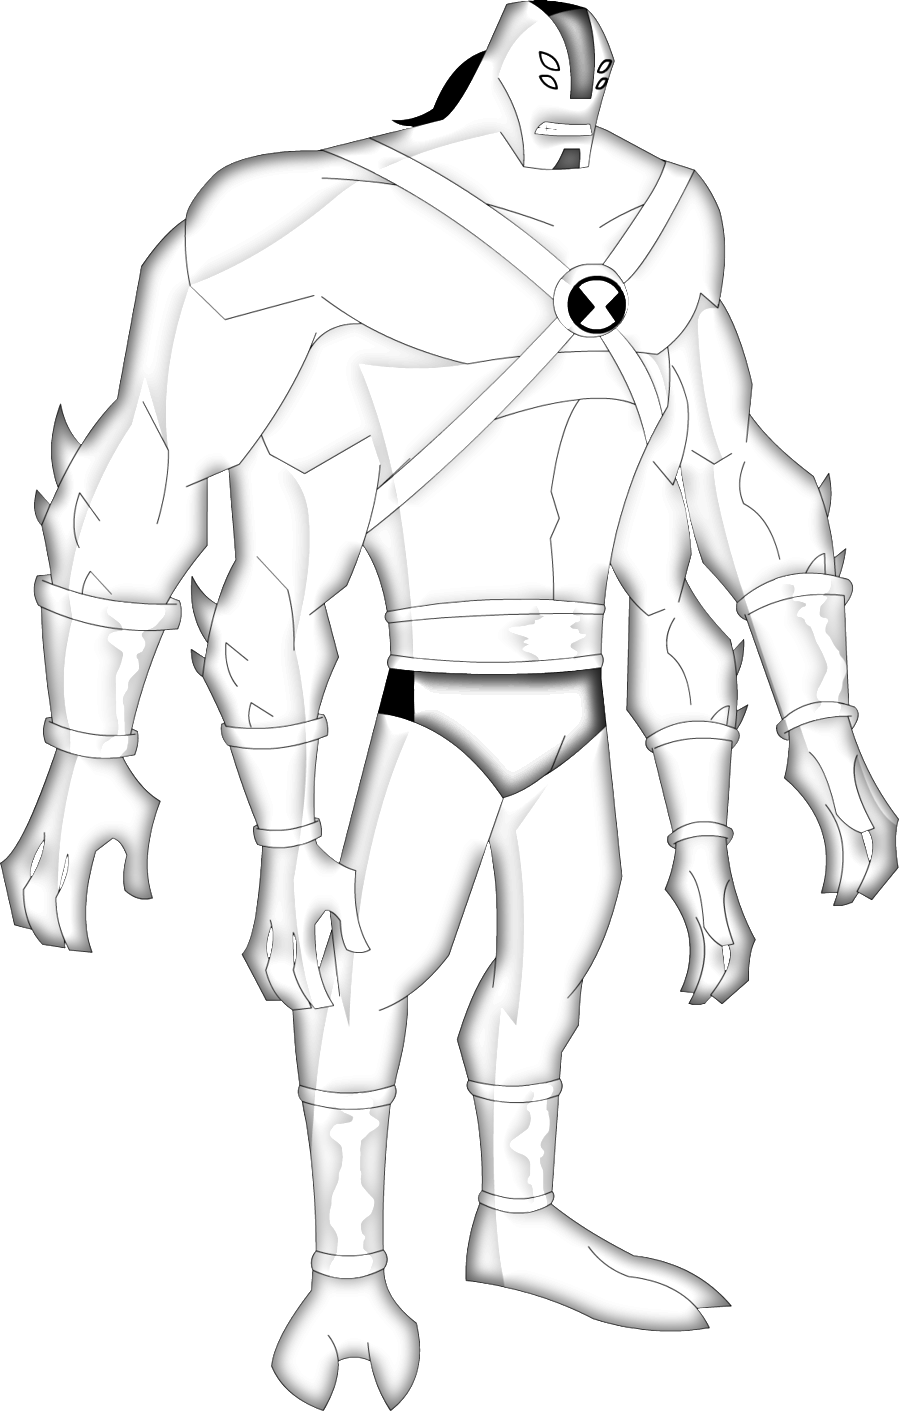 how to draw four arms ben 10. drawing ben 10 81jpg 6378. terraspin ...